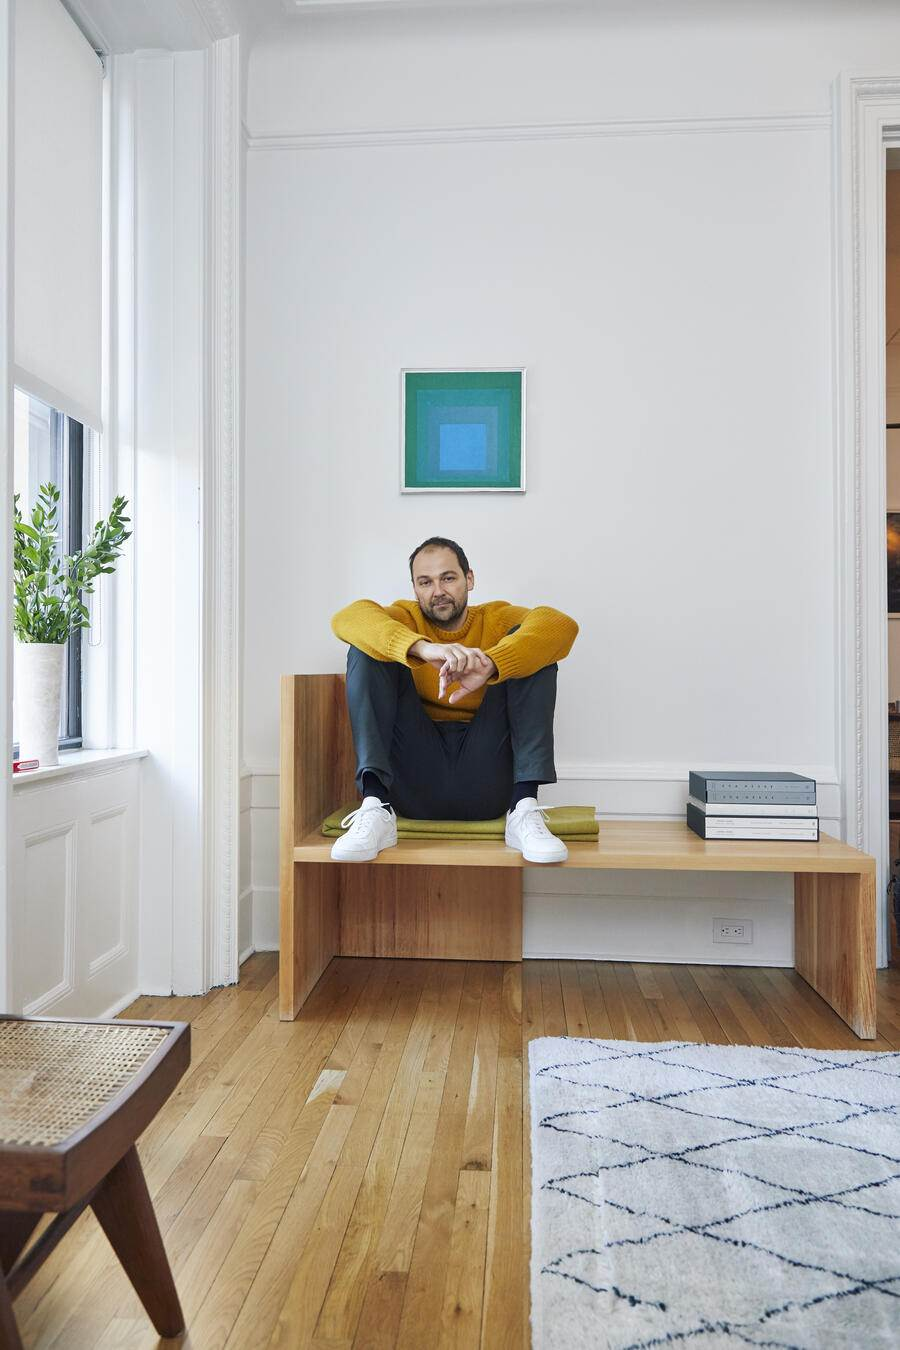 daniel Humm at his appartment in NYC